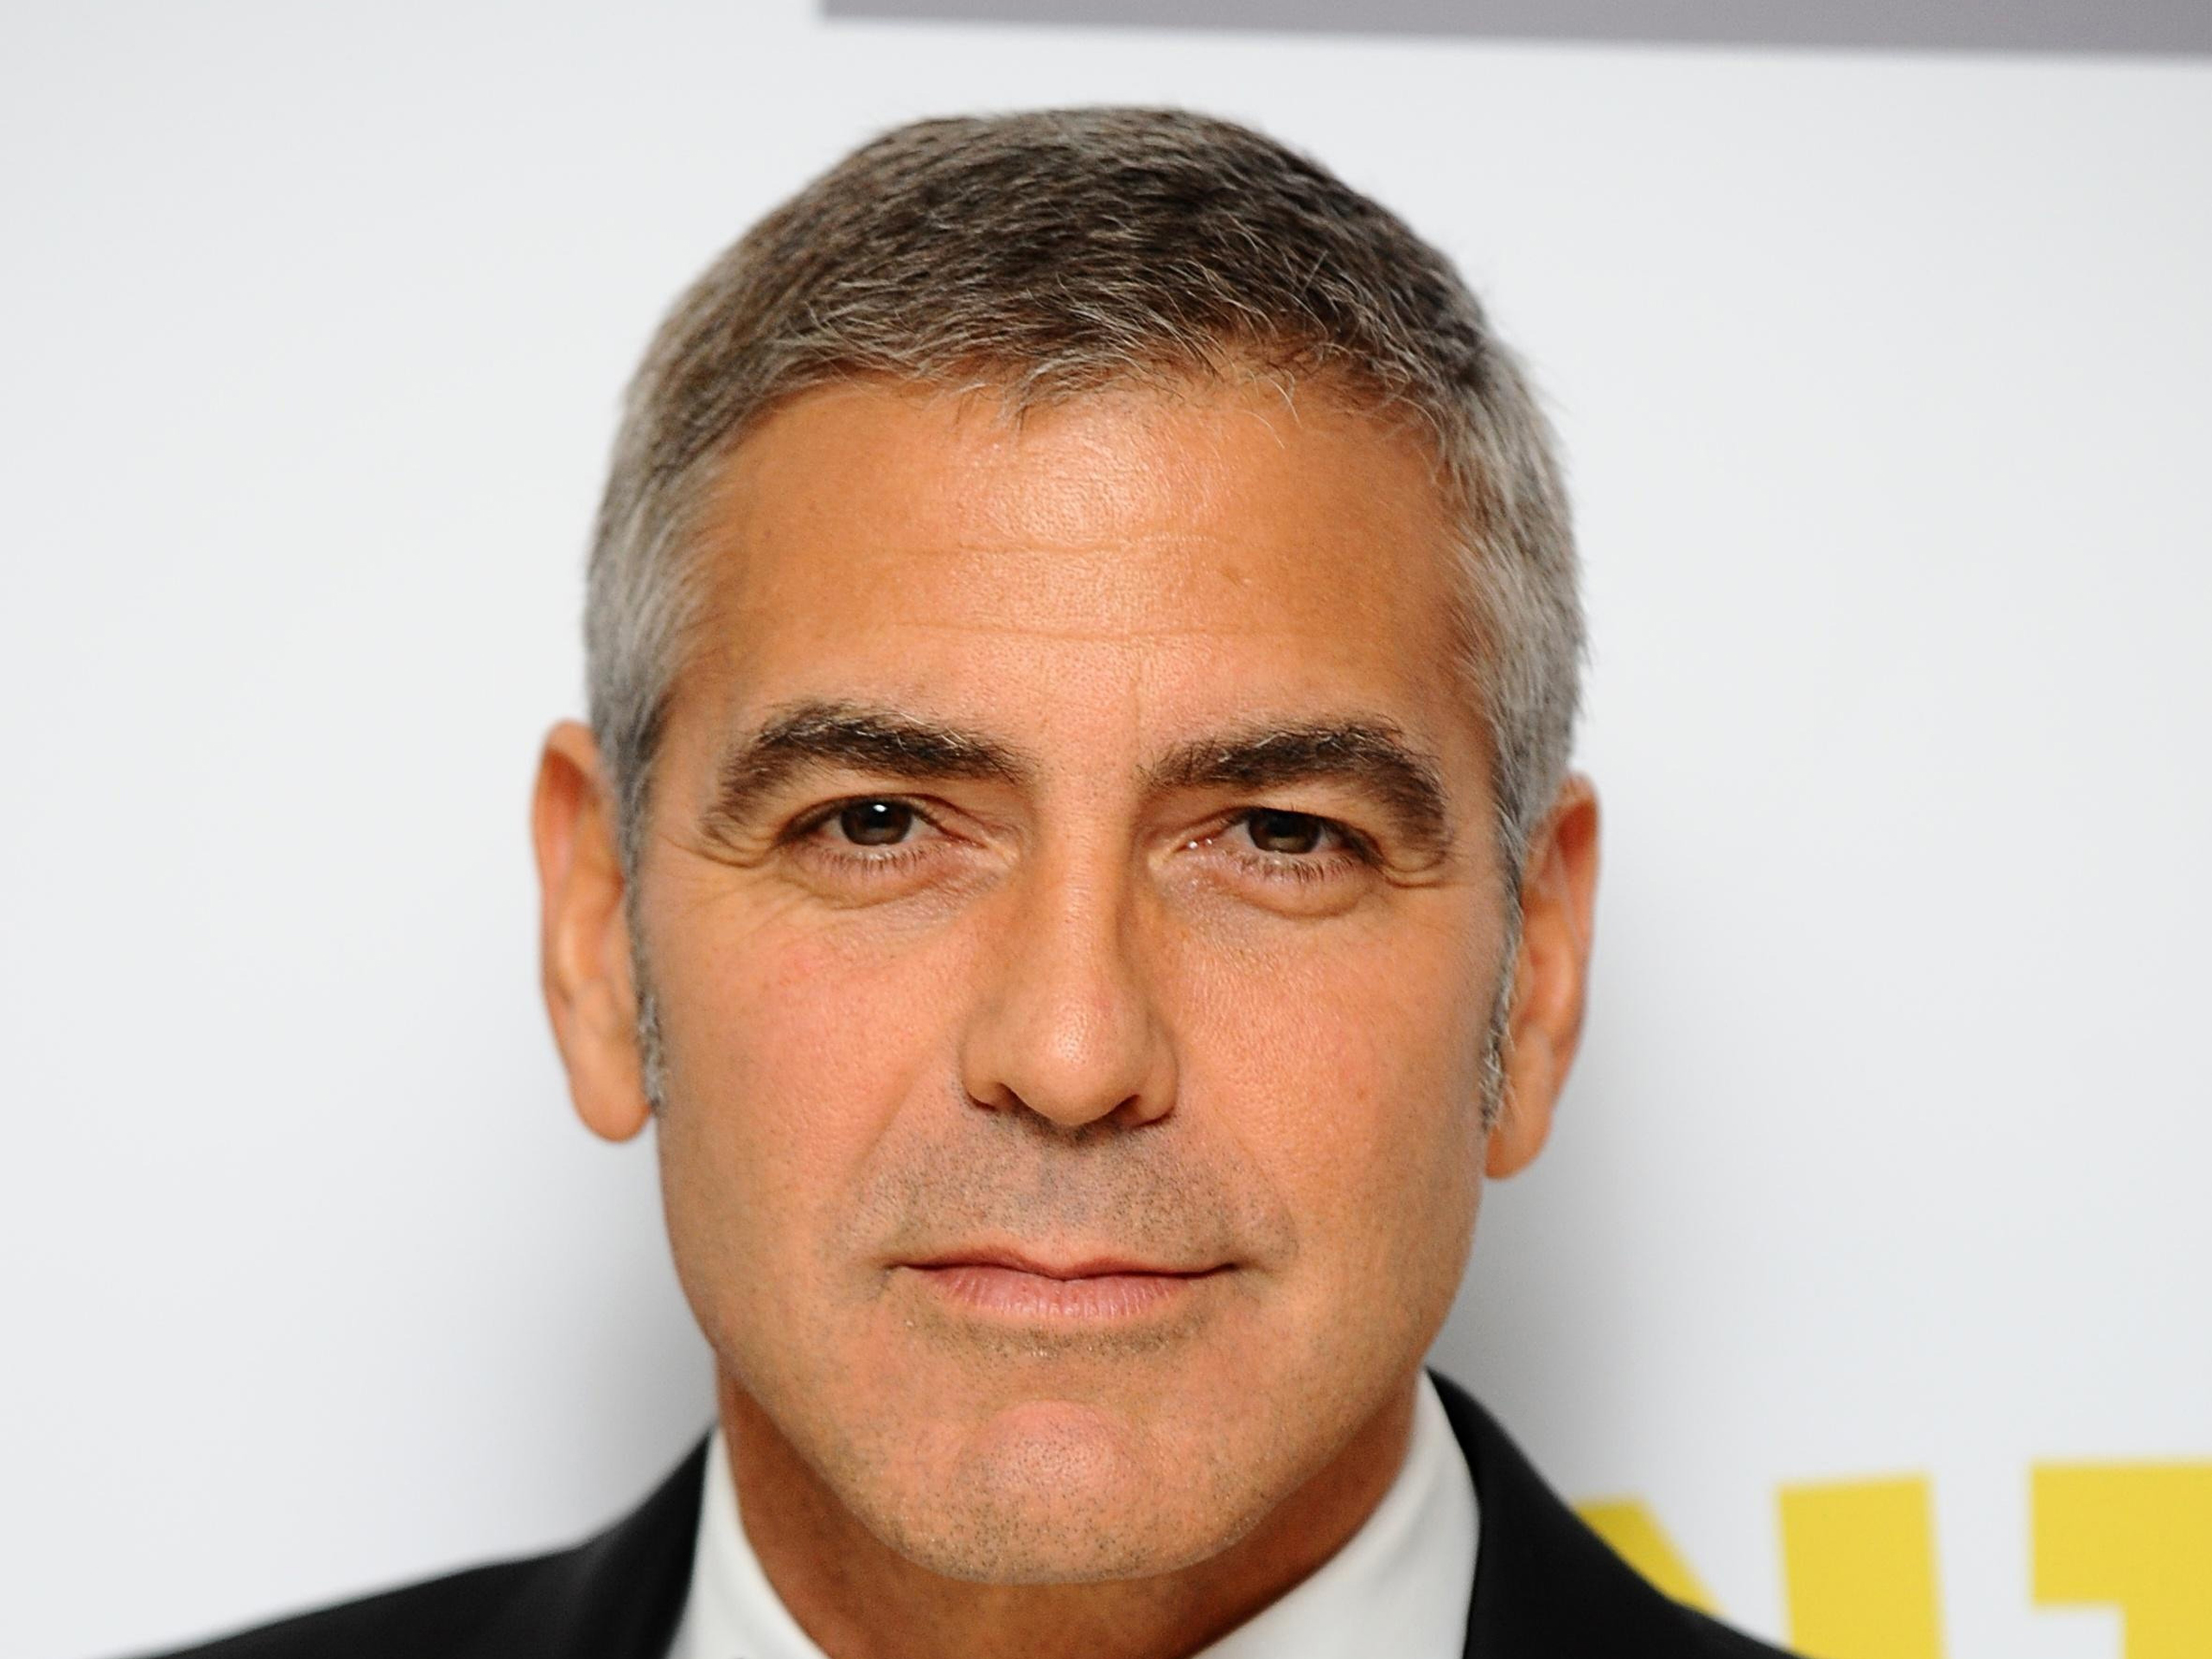 george clooney weight loss 2018. Black Bedroom Furniture Sets. Home Design Ideas